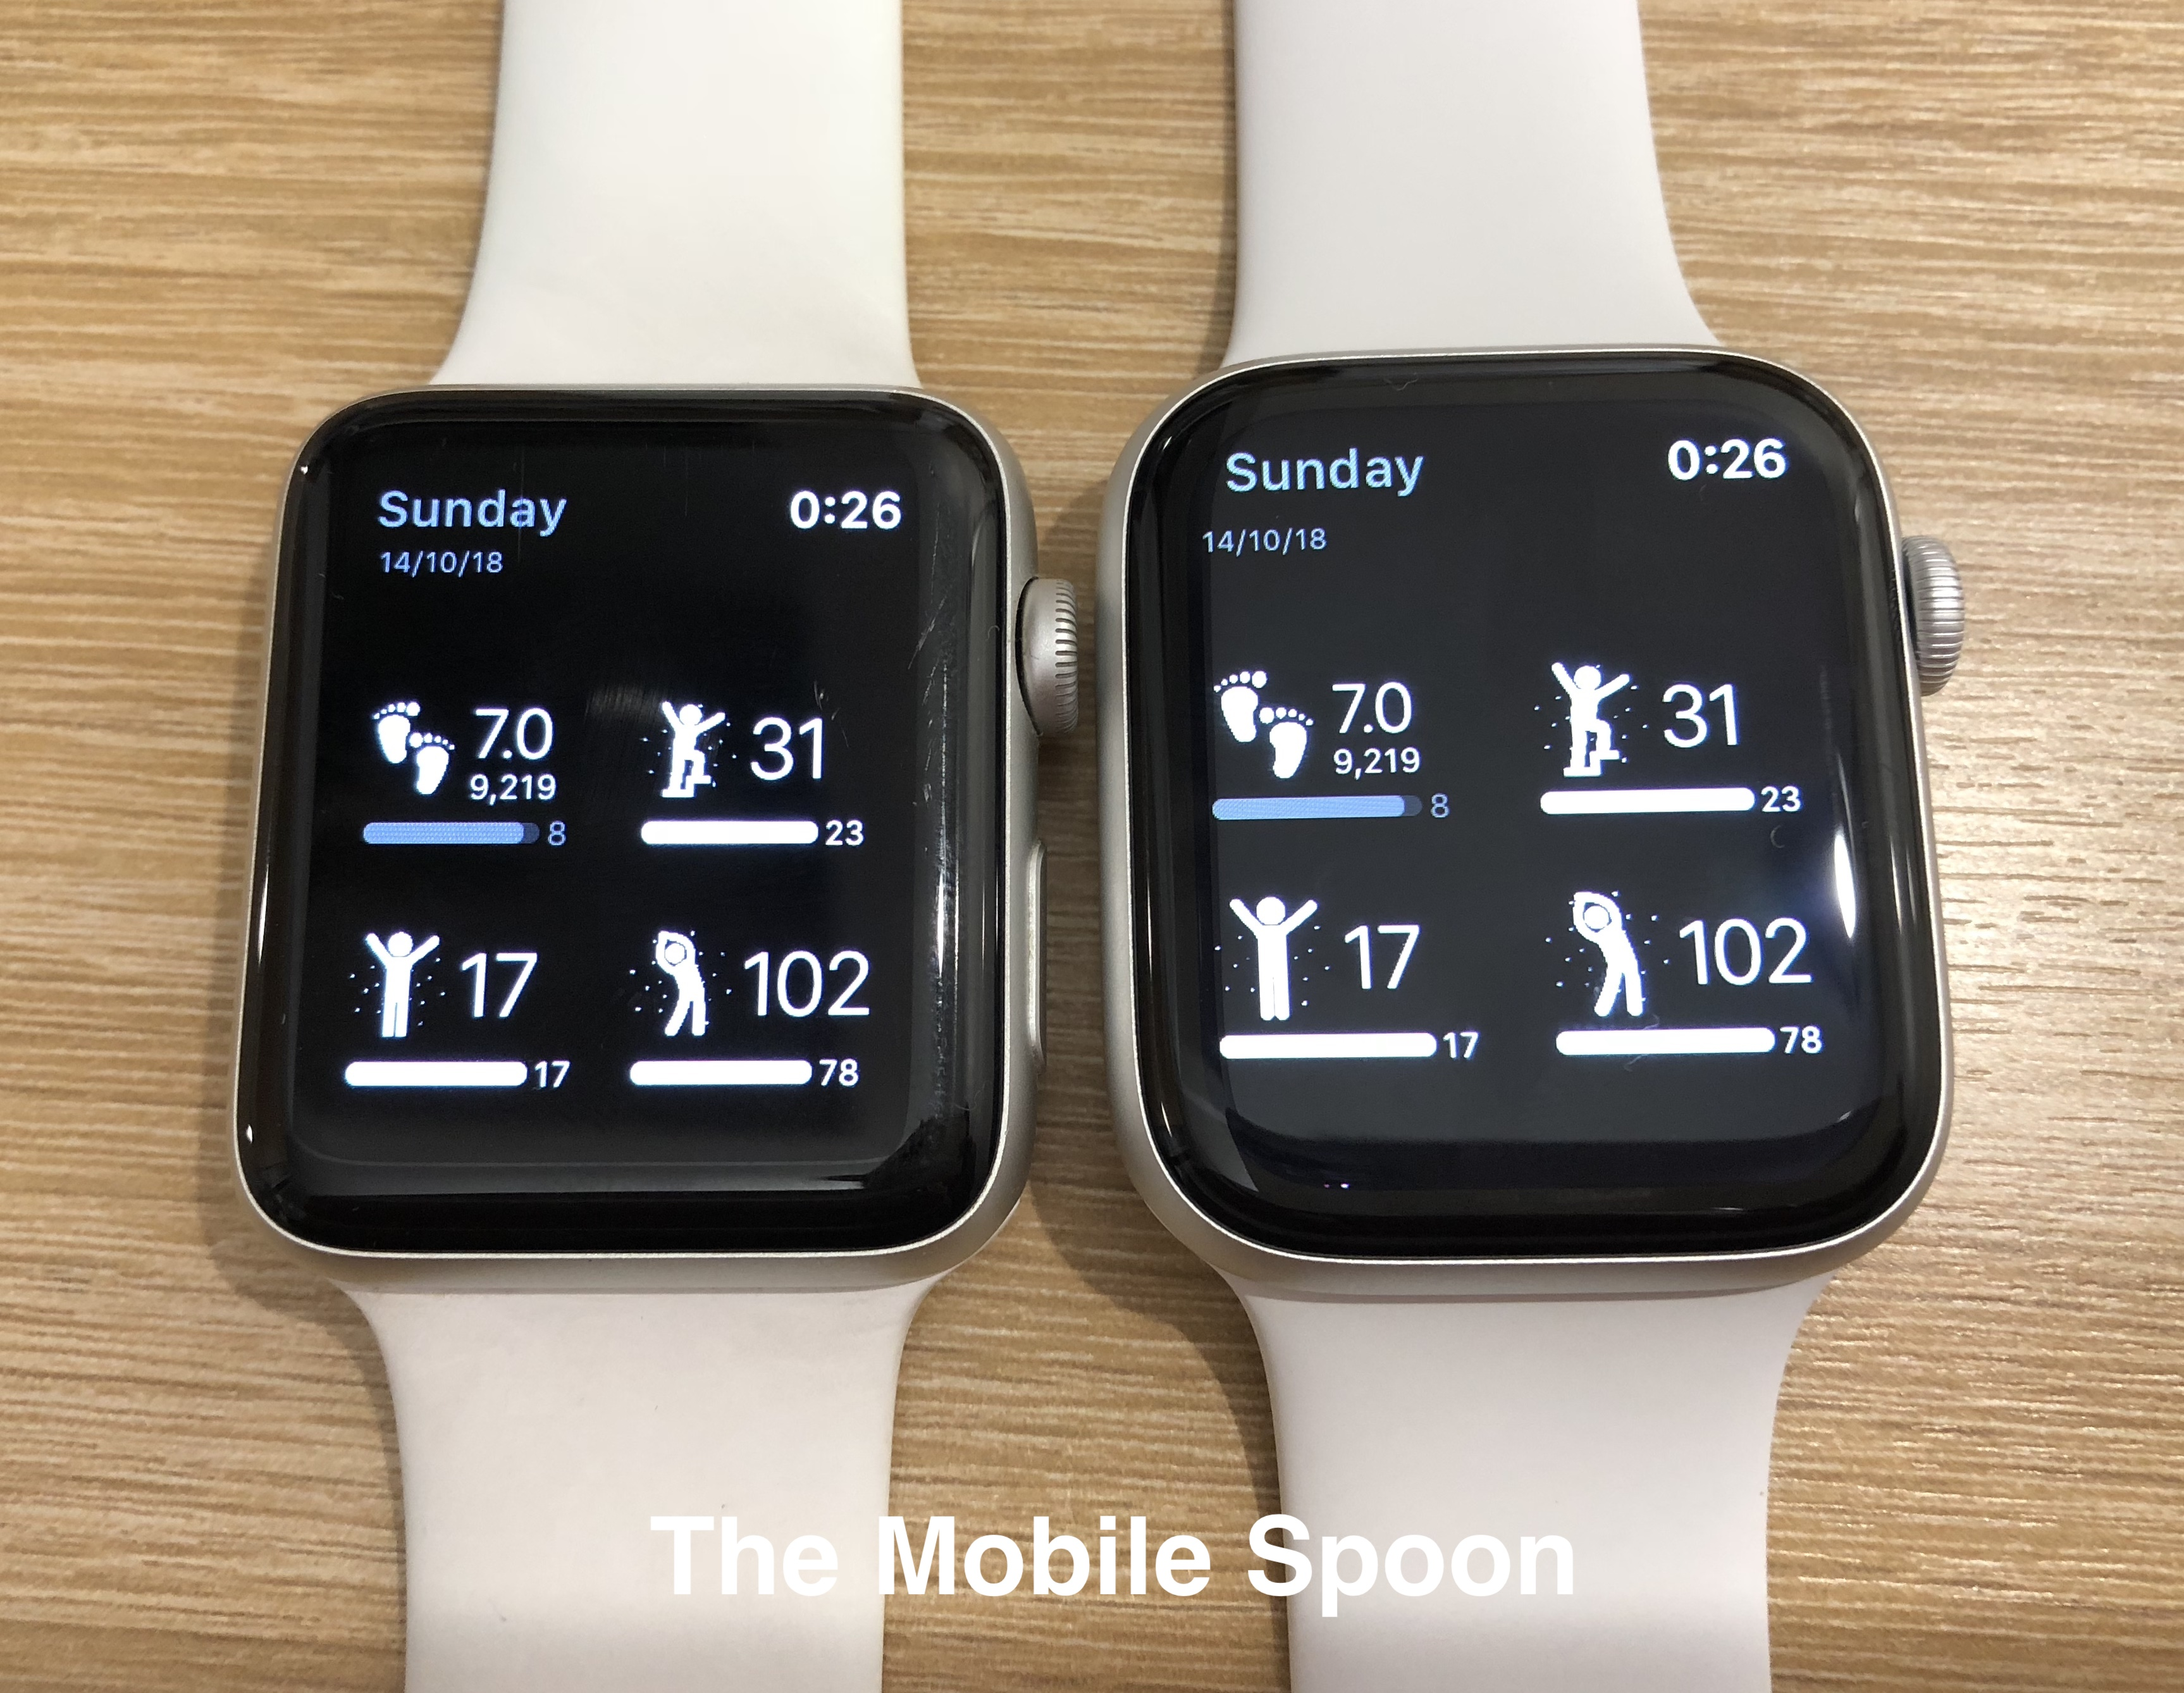 Apple Watch 44mm vs. 42mm - can you tell the difference?